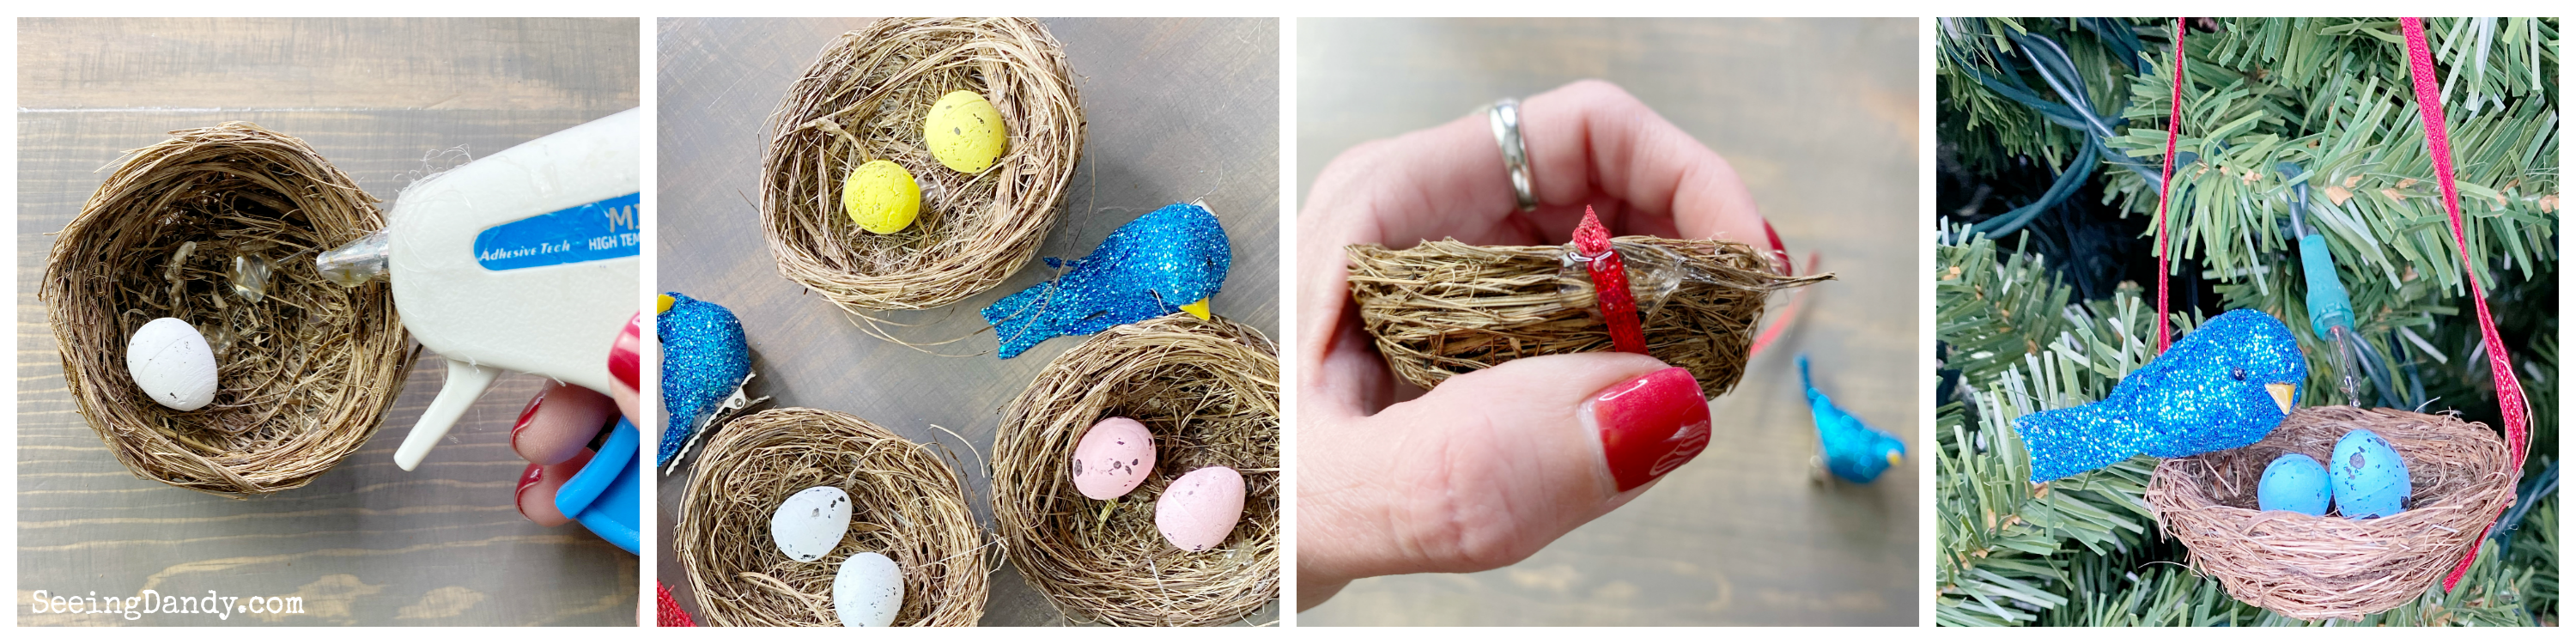 DIY bird nest Christmas tree ornament tutorial